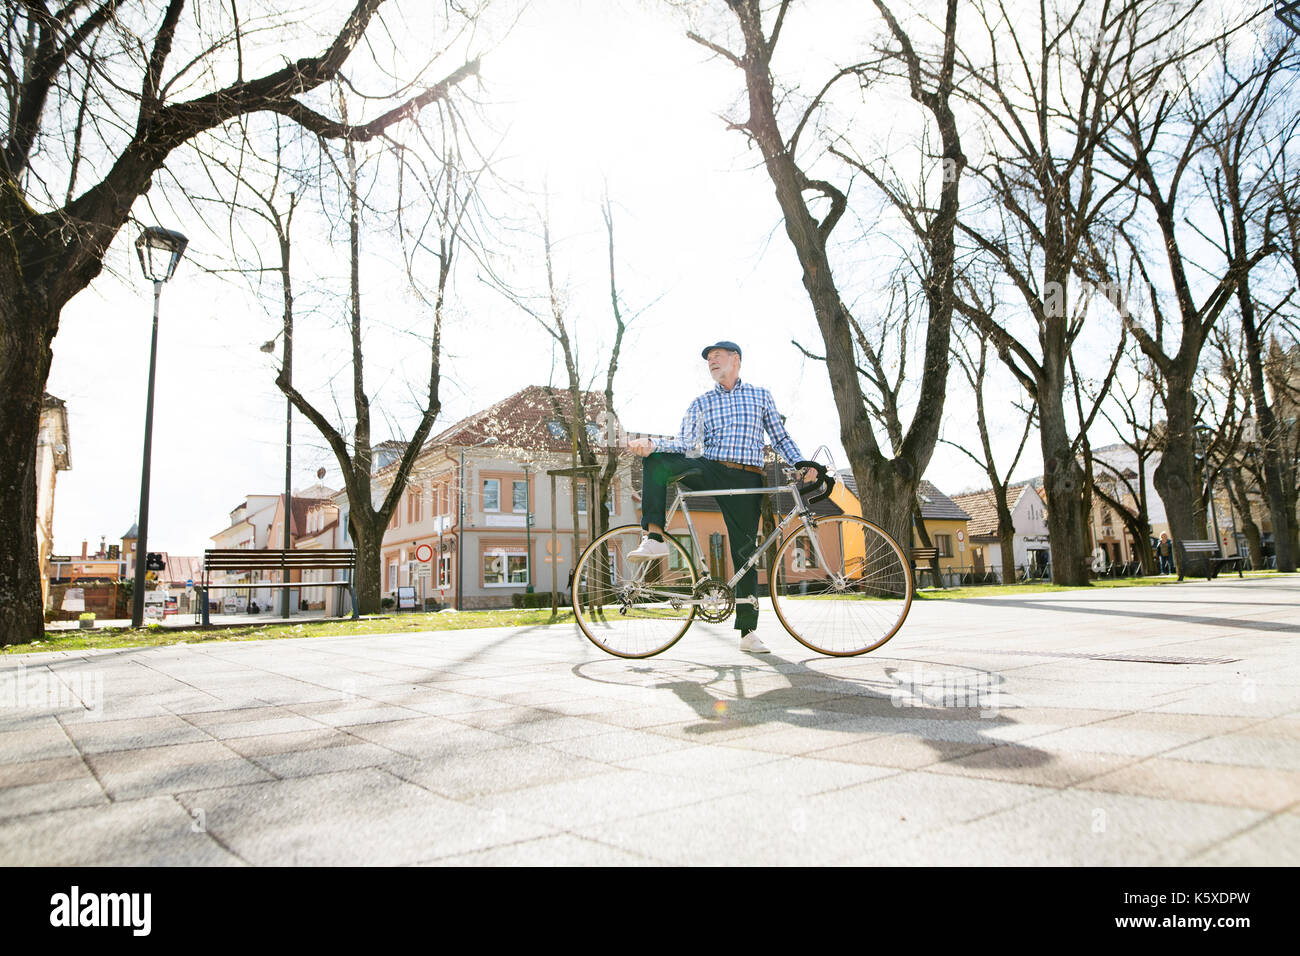 Senior man in blue checked shirt with bicycle in town. - Stock Image